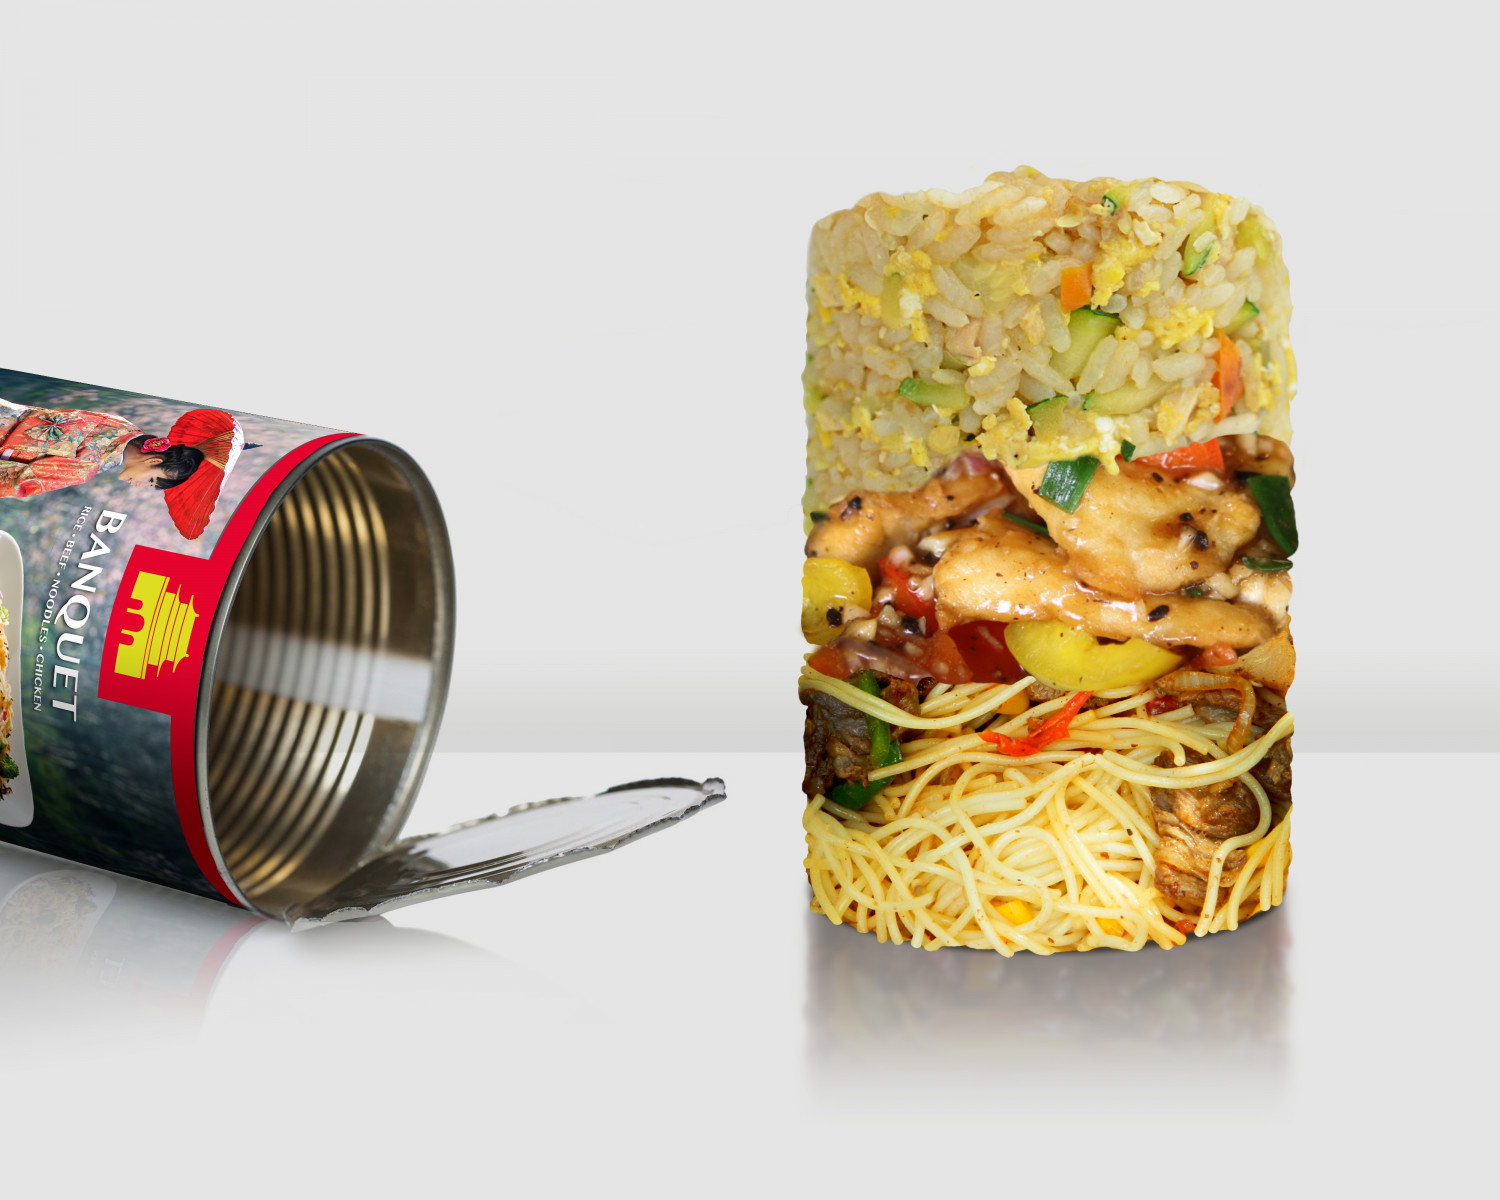 Tinned Chinese Takeaway Infographic